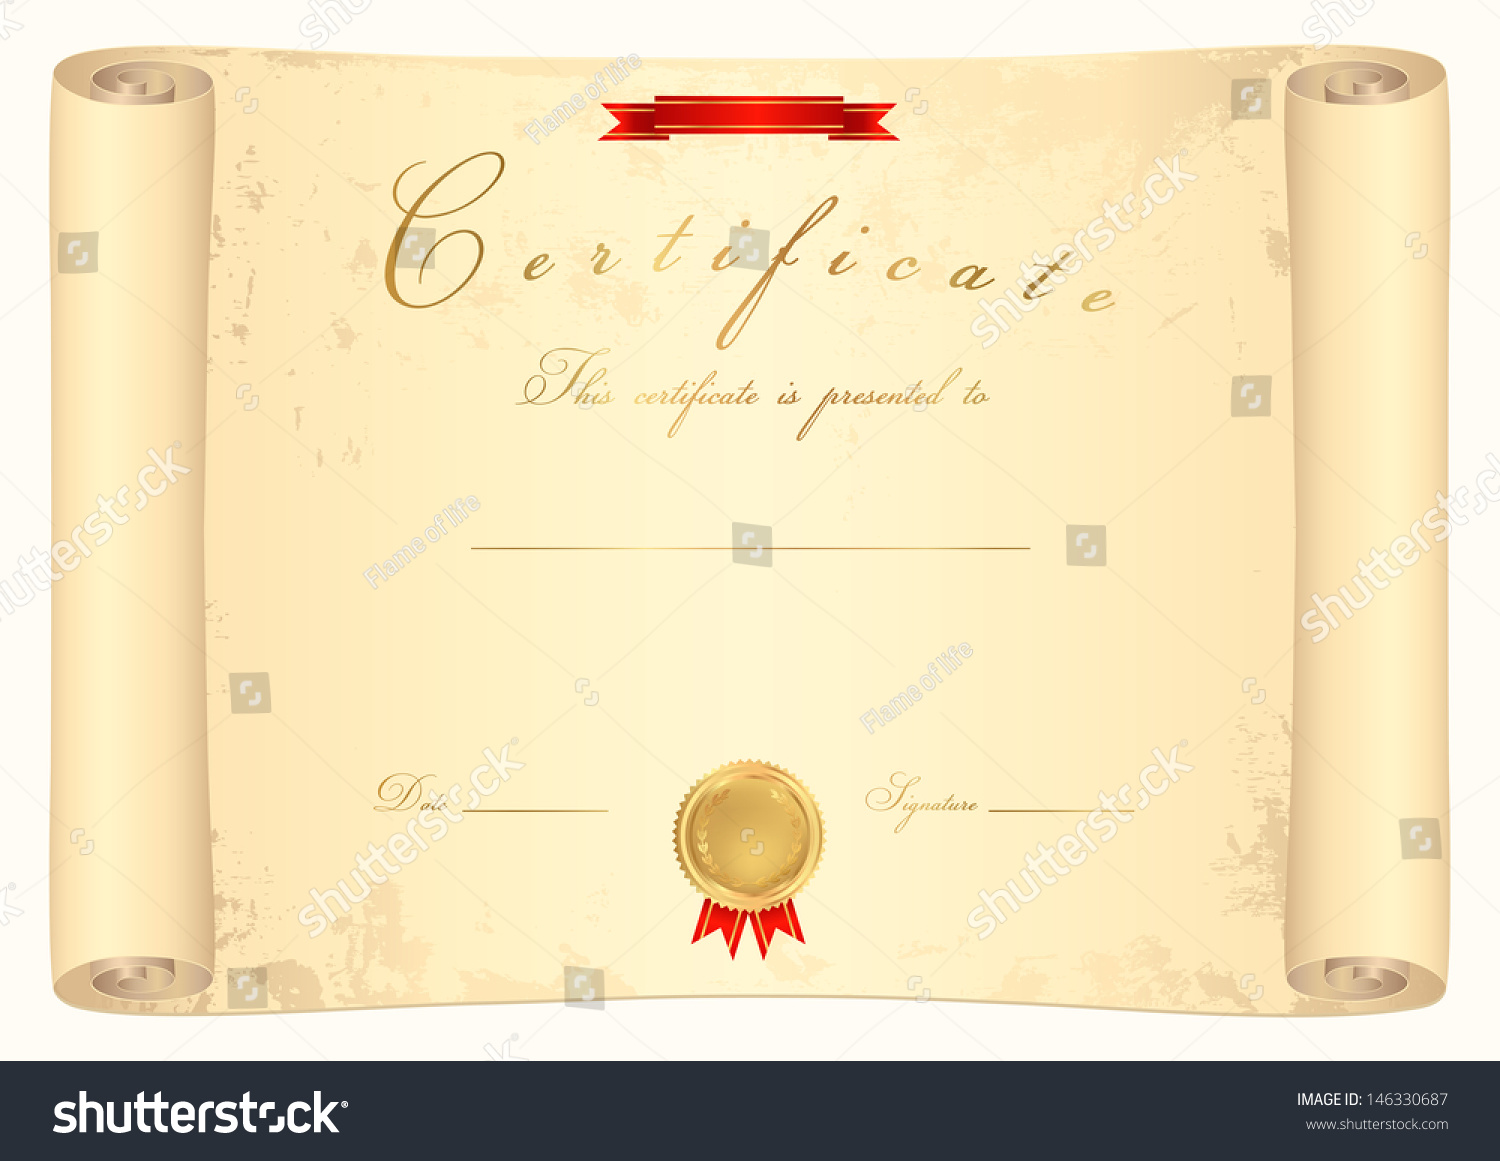 Scroll Certificate Completion Template Sample Background – Certificate of Completion Sample